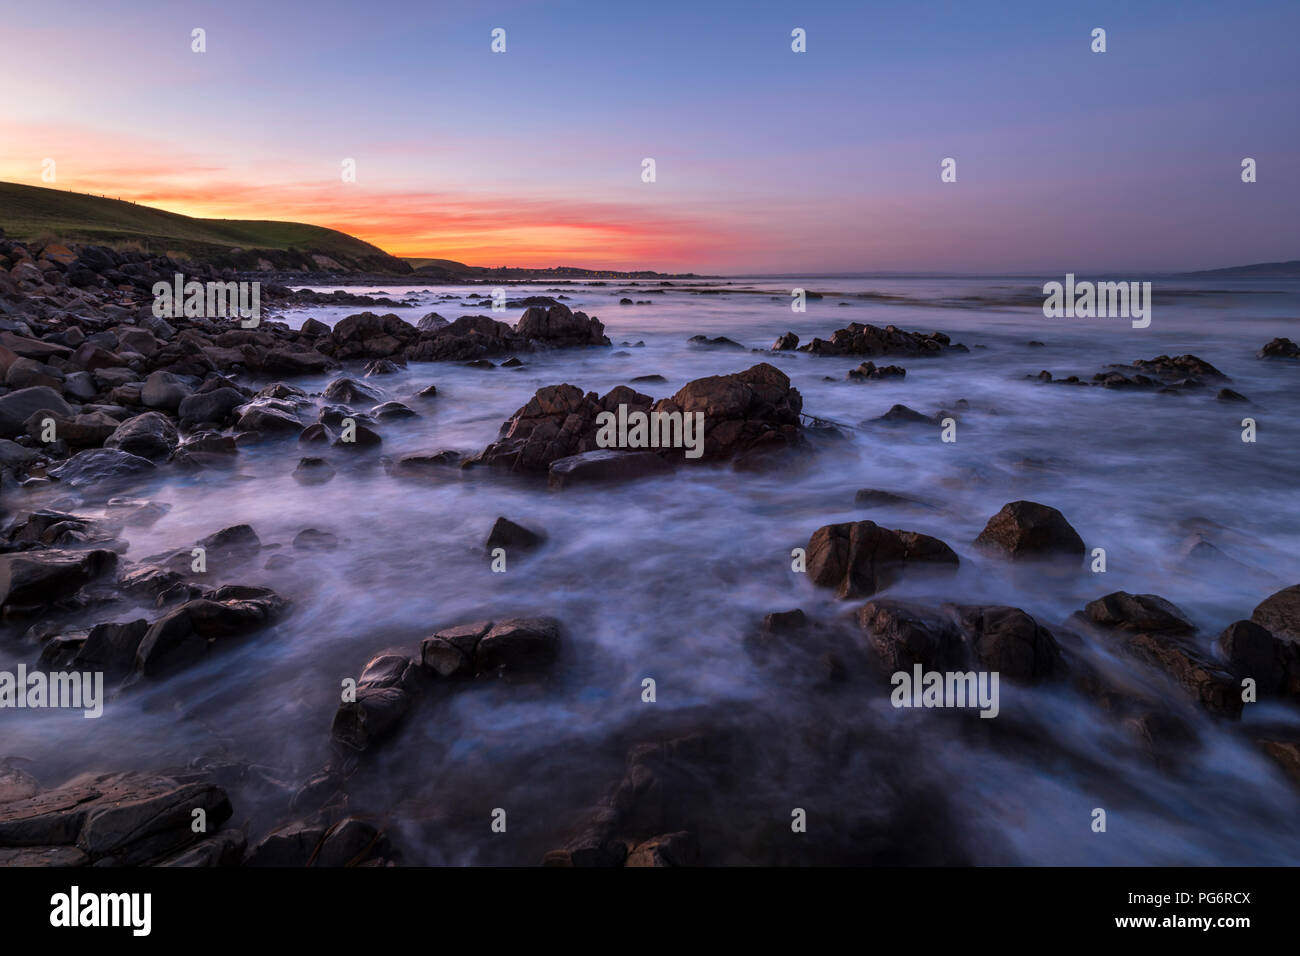 New Zealand, South Island, Southern Scenic Route, Catlins, sunset at Kaka Point - Stock Image